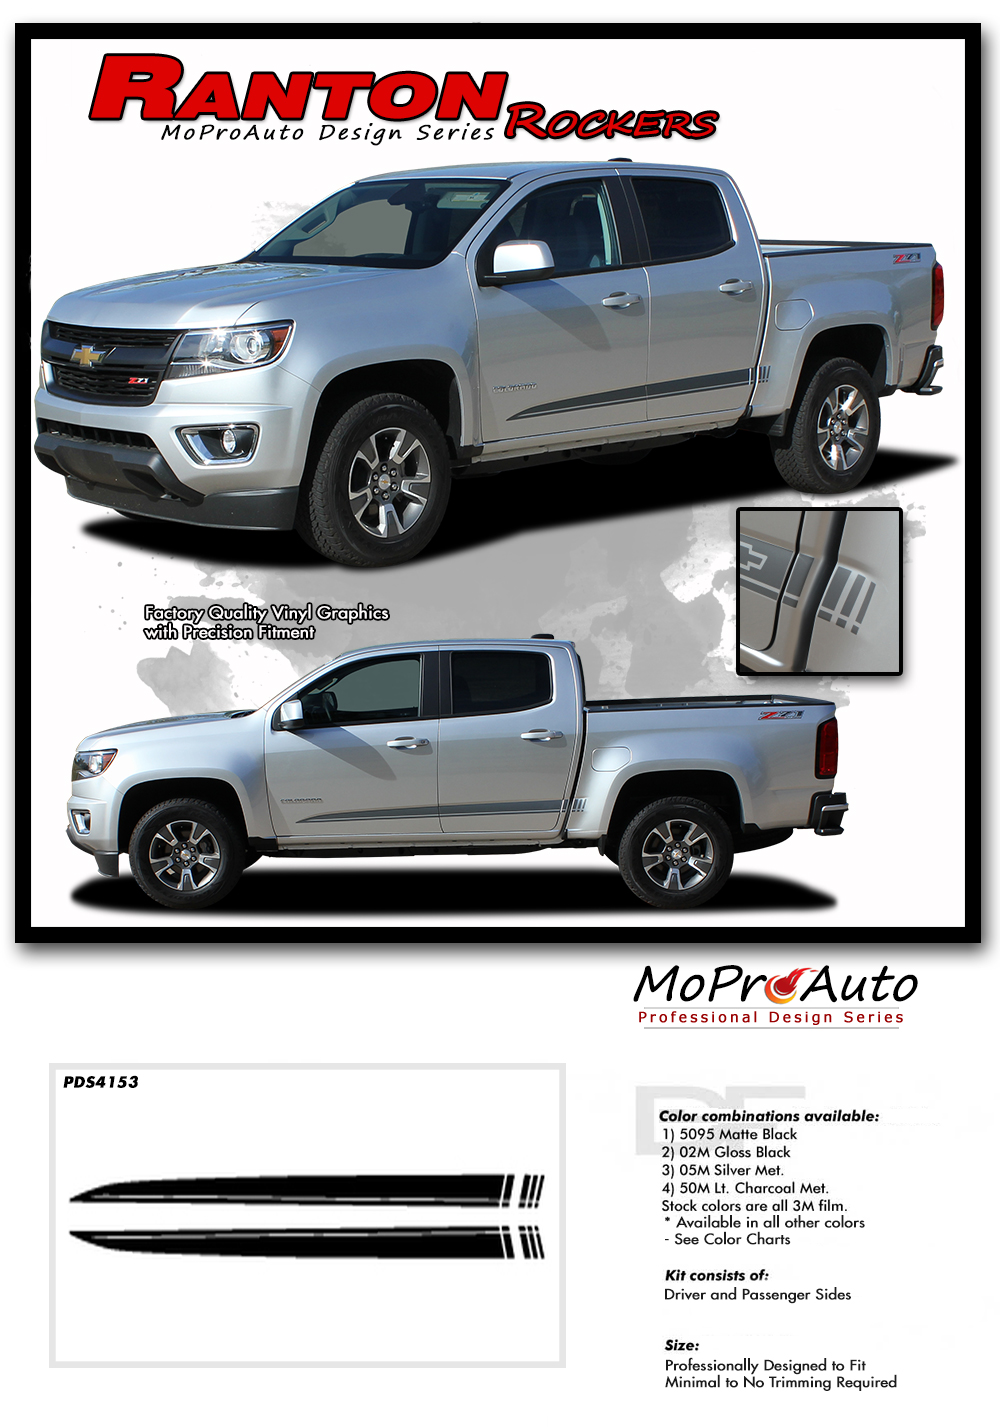 2015 2016 2017 2018 2019 2020 RANTON CHEVY COLORADO - MoProAuto Pro Design Series Vinyl Graphics, Stripes and Decals Kit